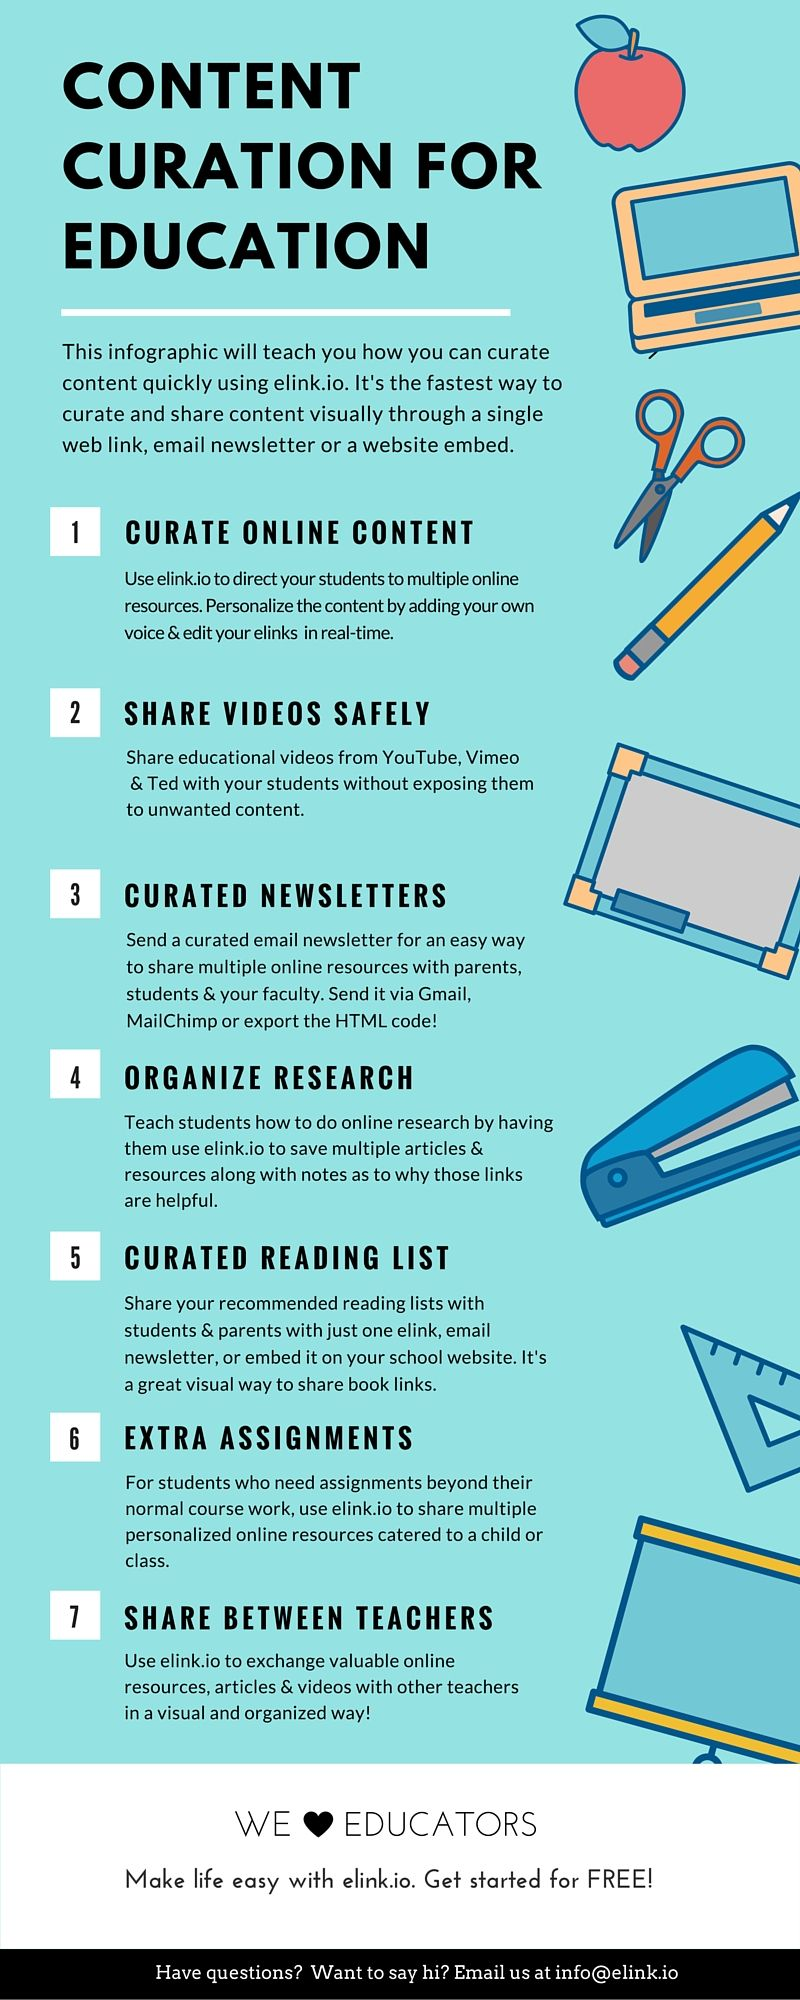 Content Curation For Education #infographic